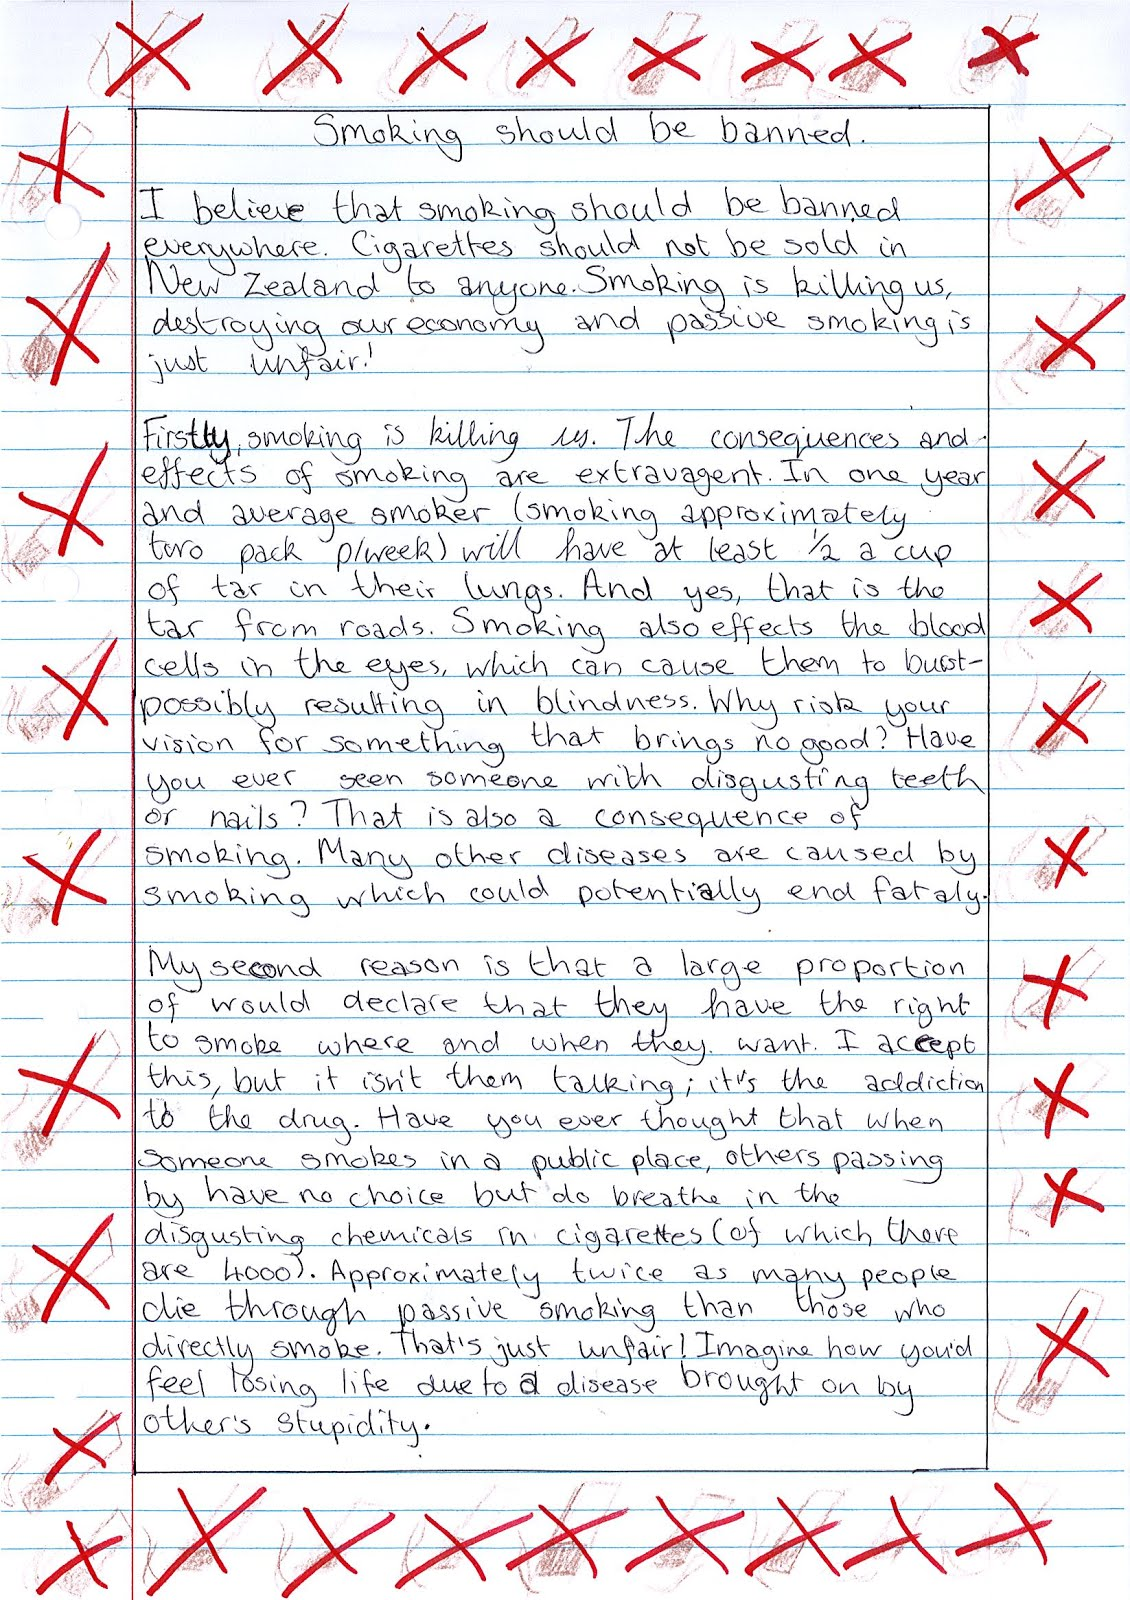 molly s learning blog 2012 persuasive writing smoking should be banned